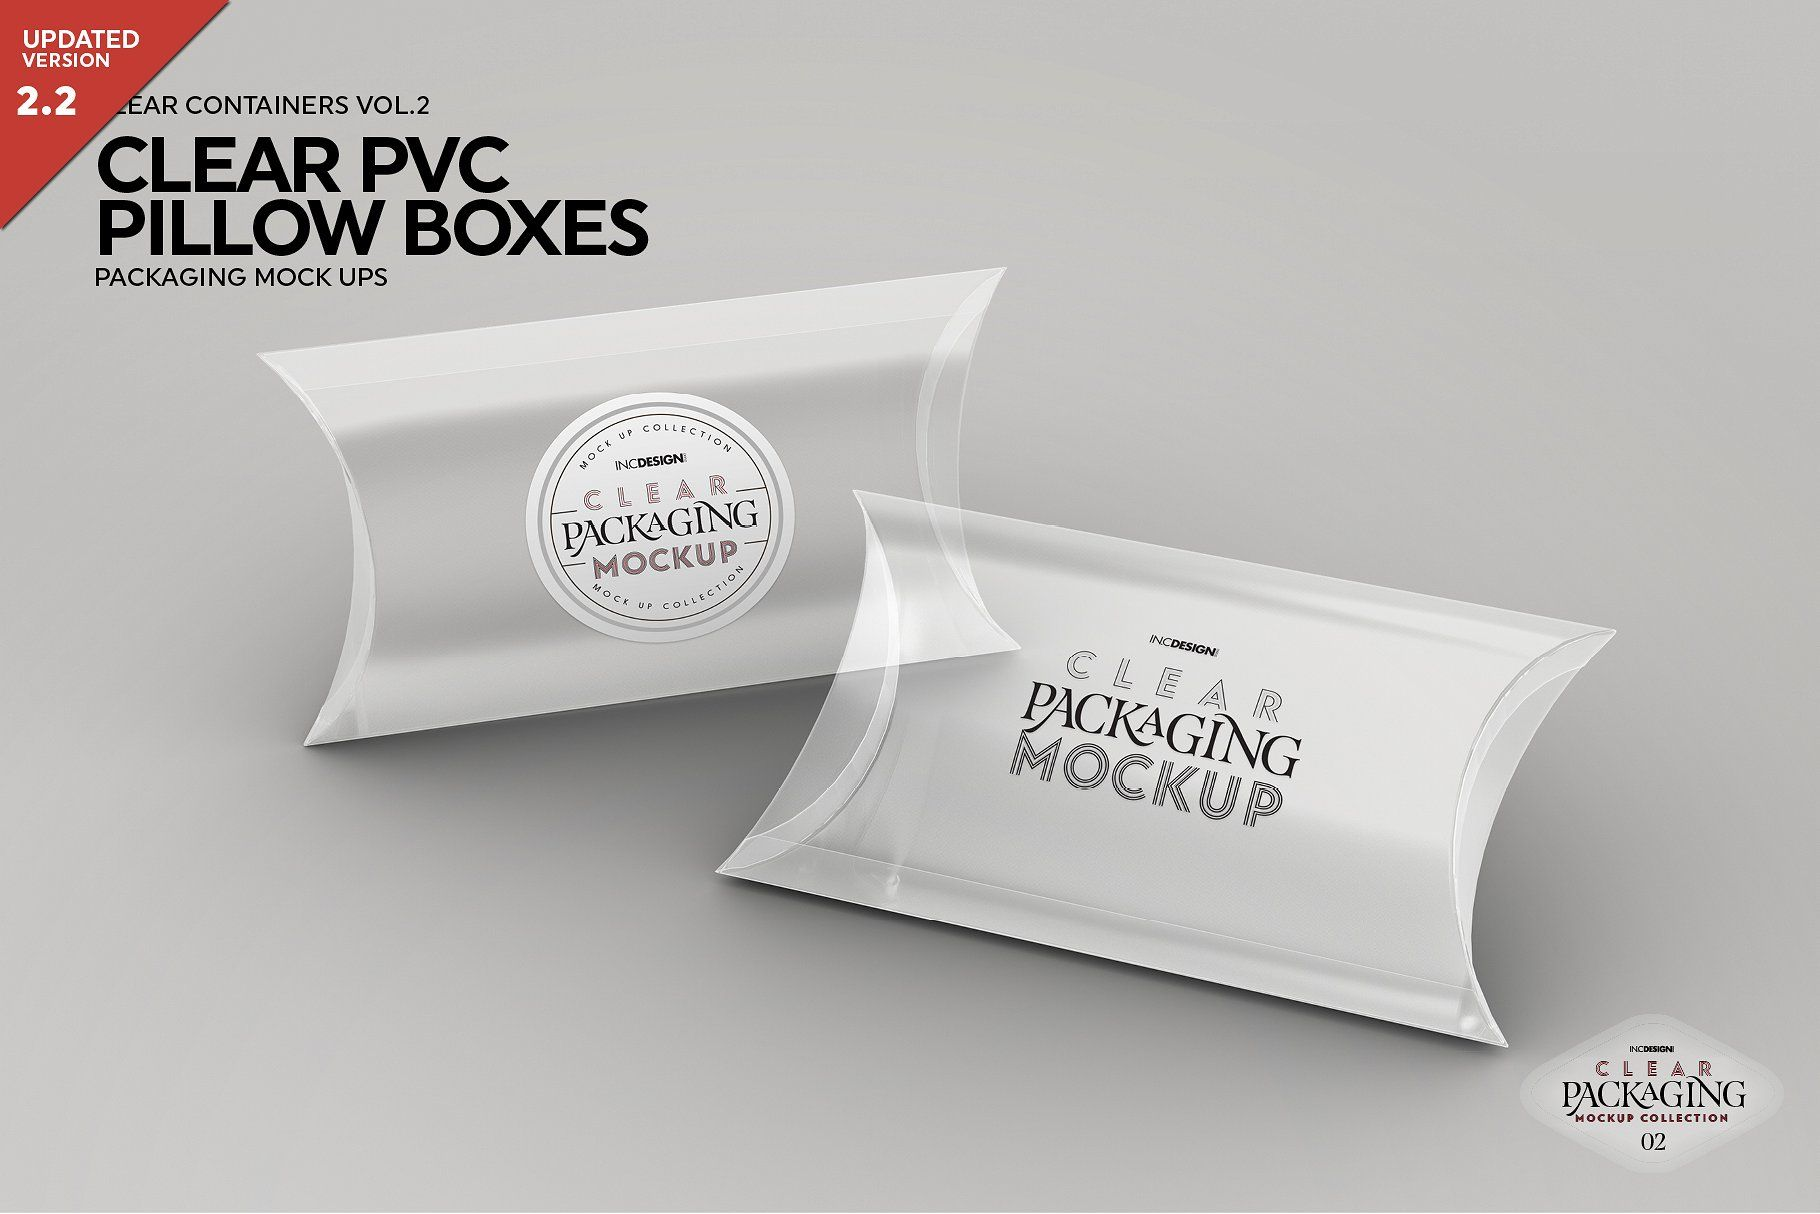 Clear Pillow Boxes Packaging Mockup Packaging Mockup Clear Container Pillow Box